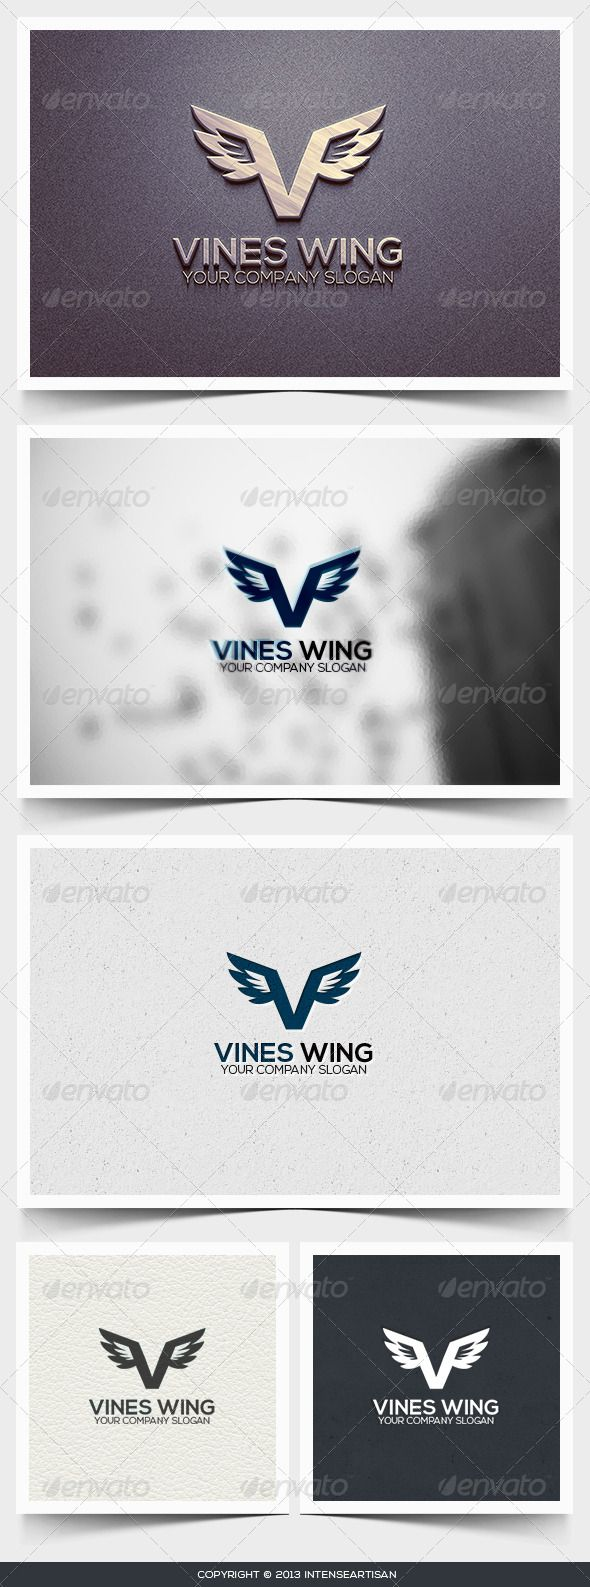 Vines Wing Logo Template (Letters)